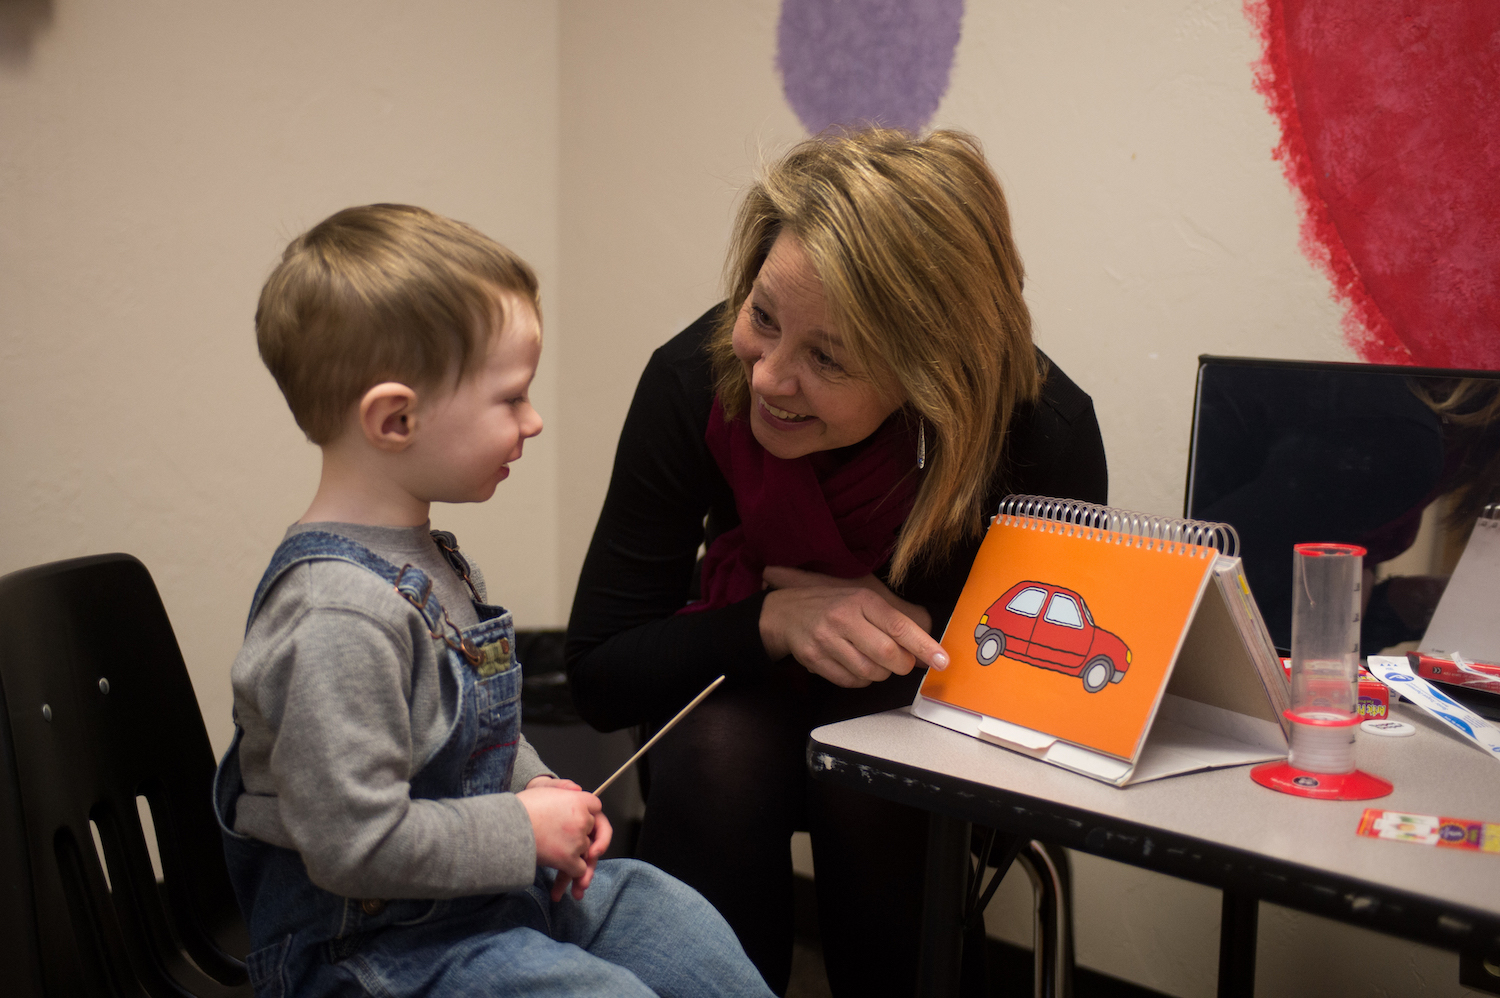 ISU Speech and Language Clinic to provide free treatment for children thanks to funds from Scottish Rite Foundation